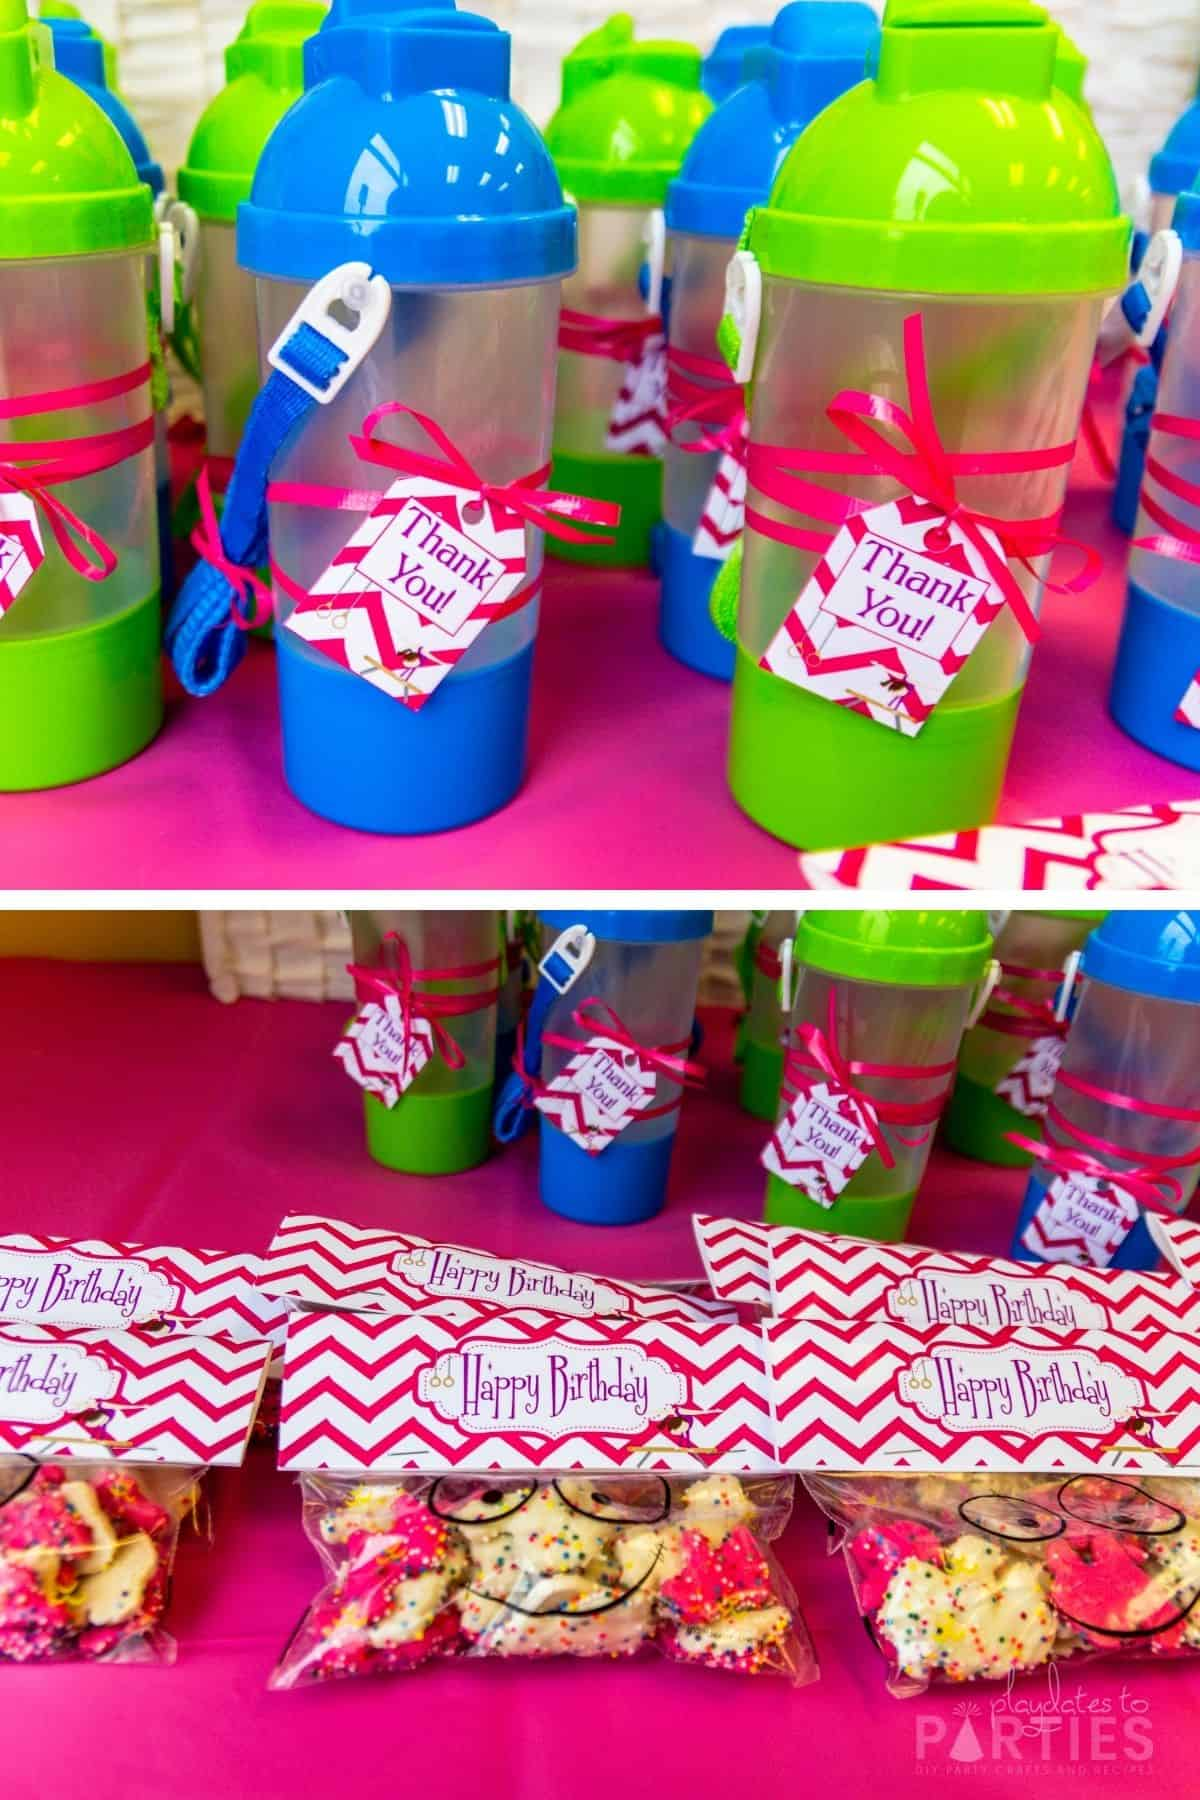 collage of party favors with gymnastics themed labels, including frosted cookies and hidden compartment sippy cups